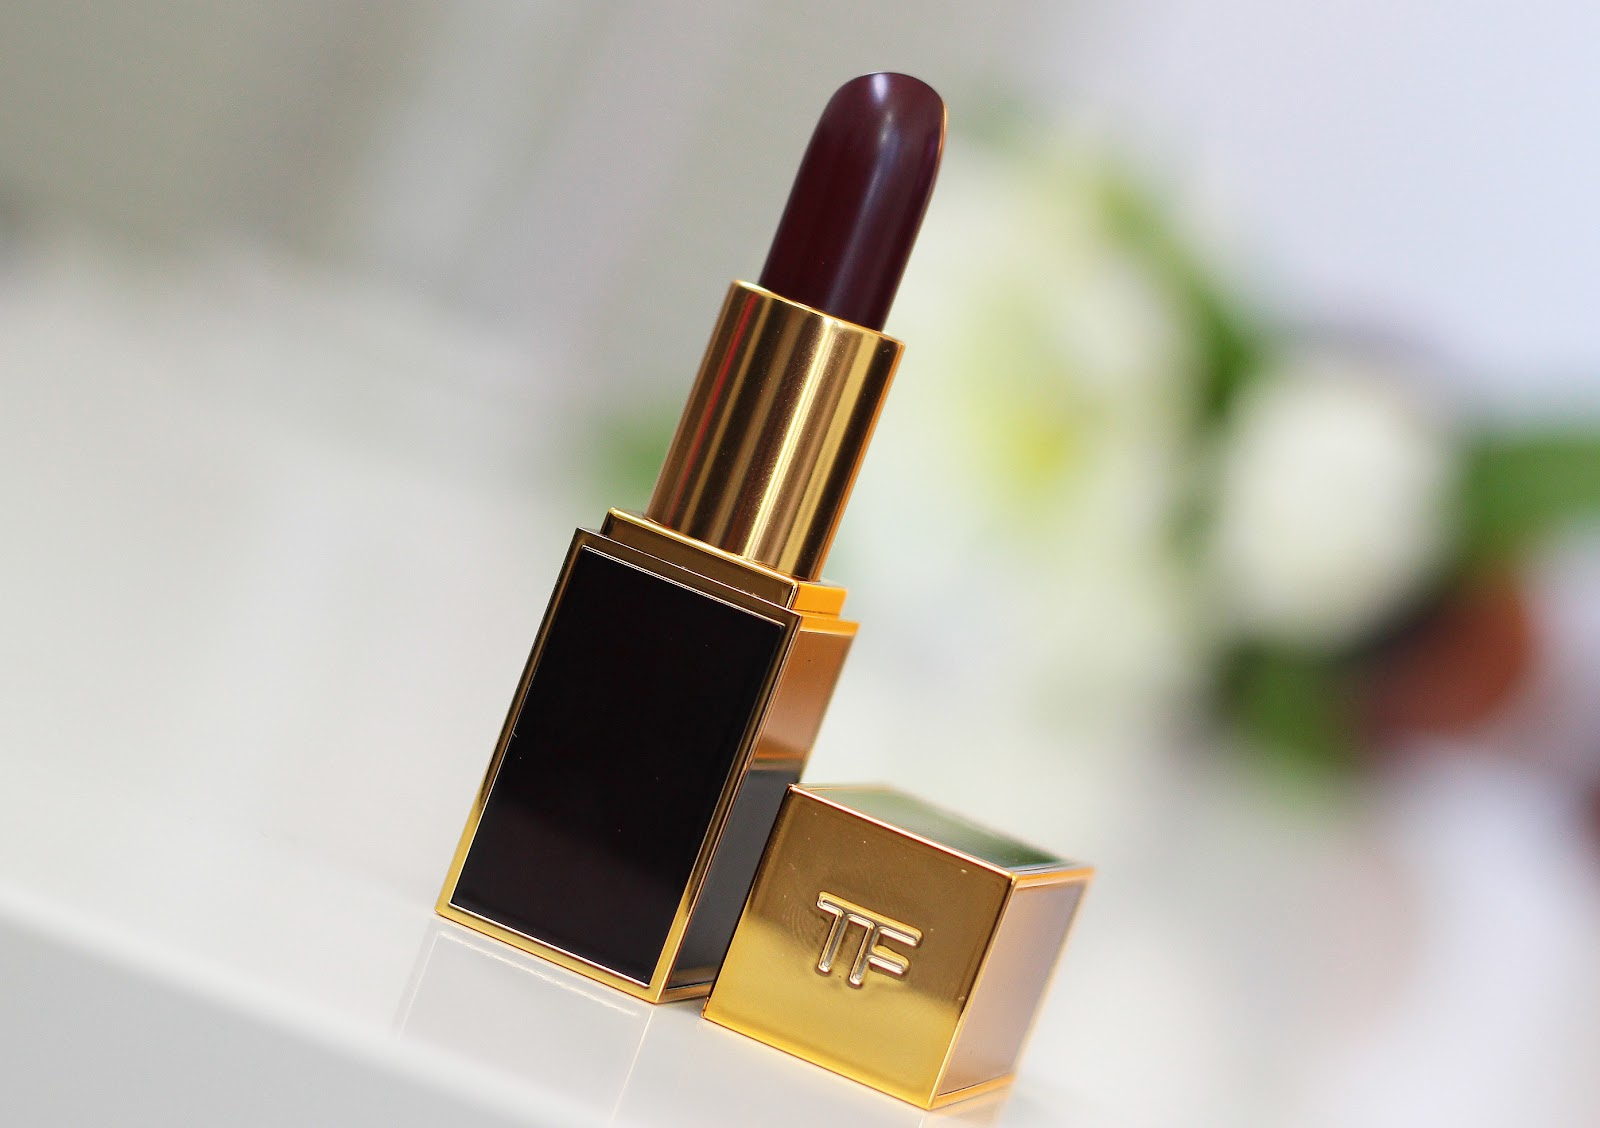 micheleista the beauty hunter tom ford black orchid lipstick. Cars Review. Best American Auto & Cars Review